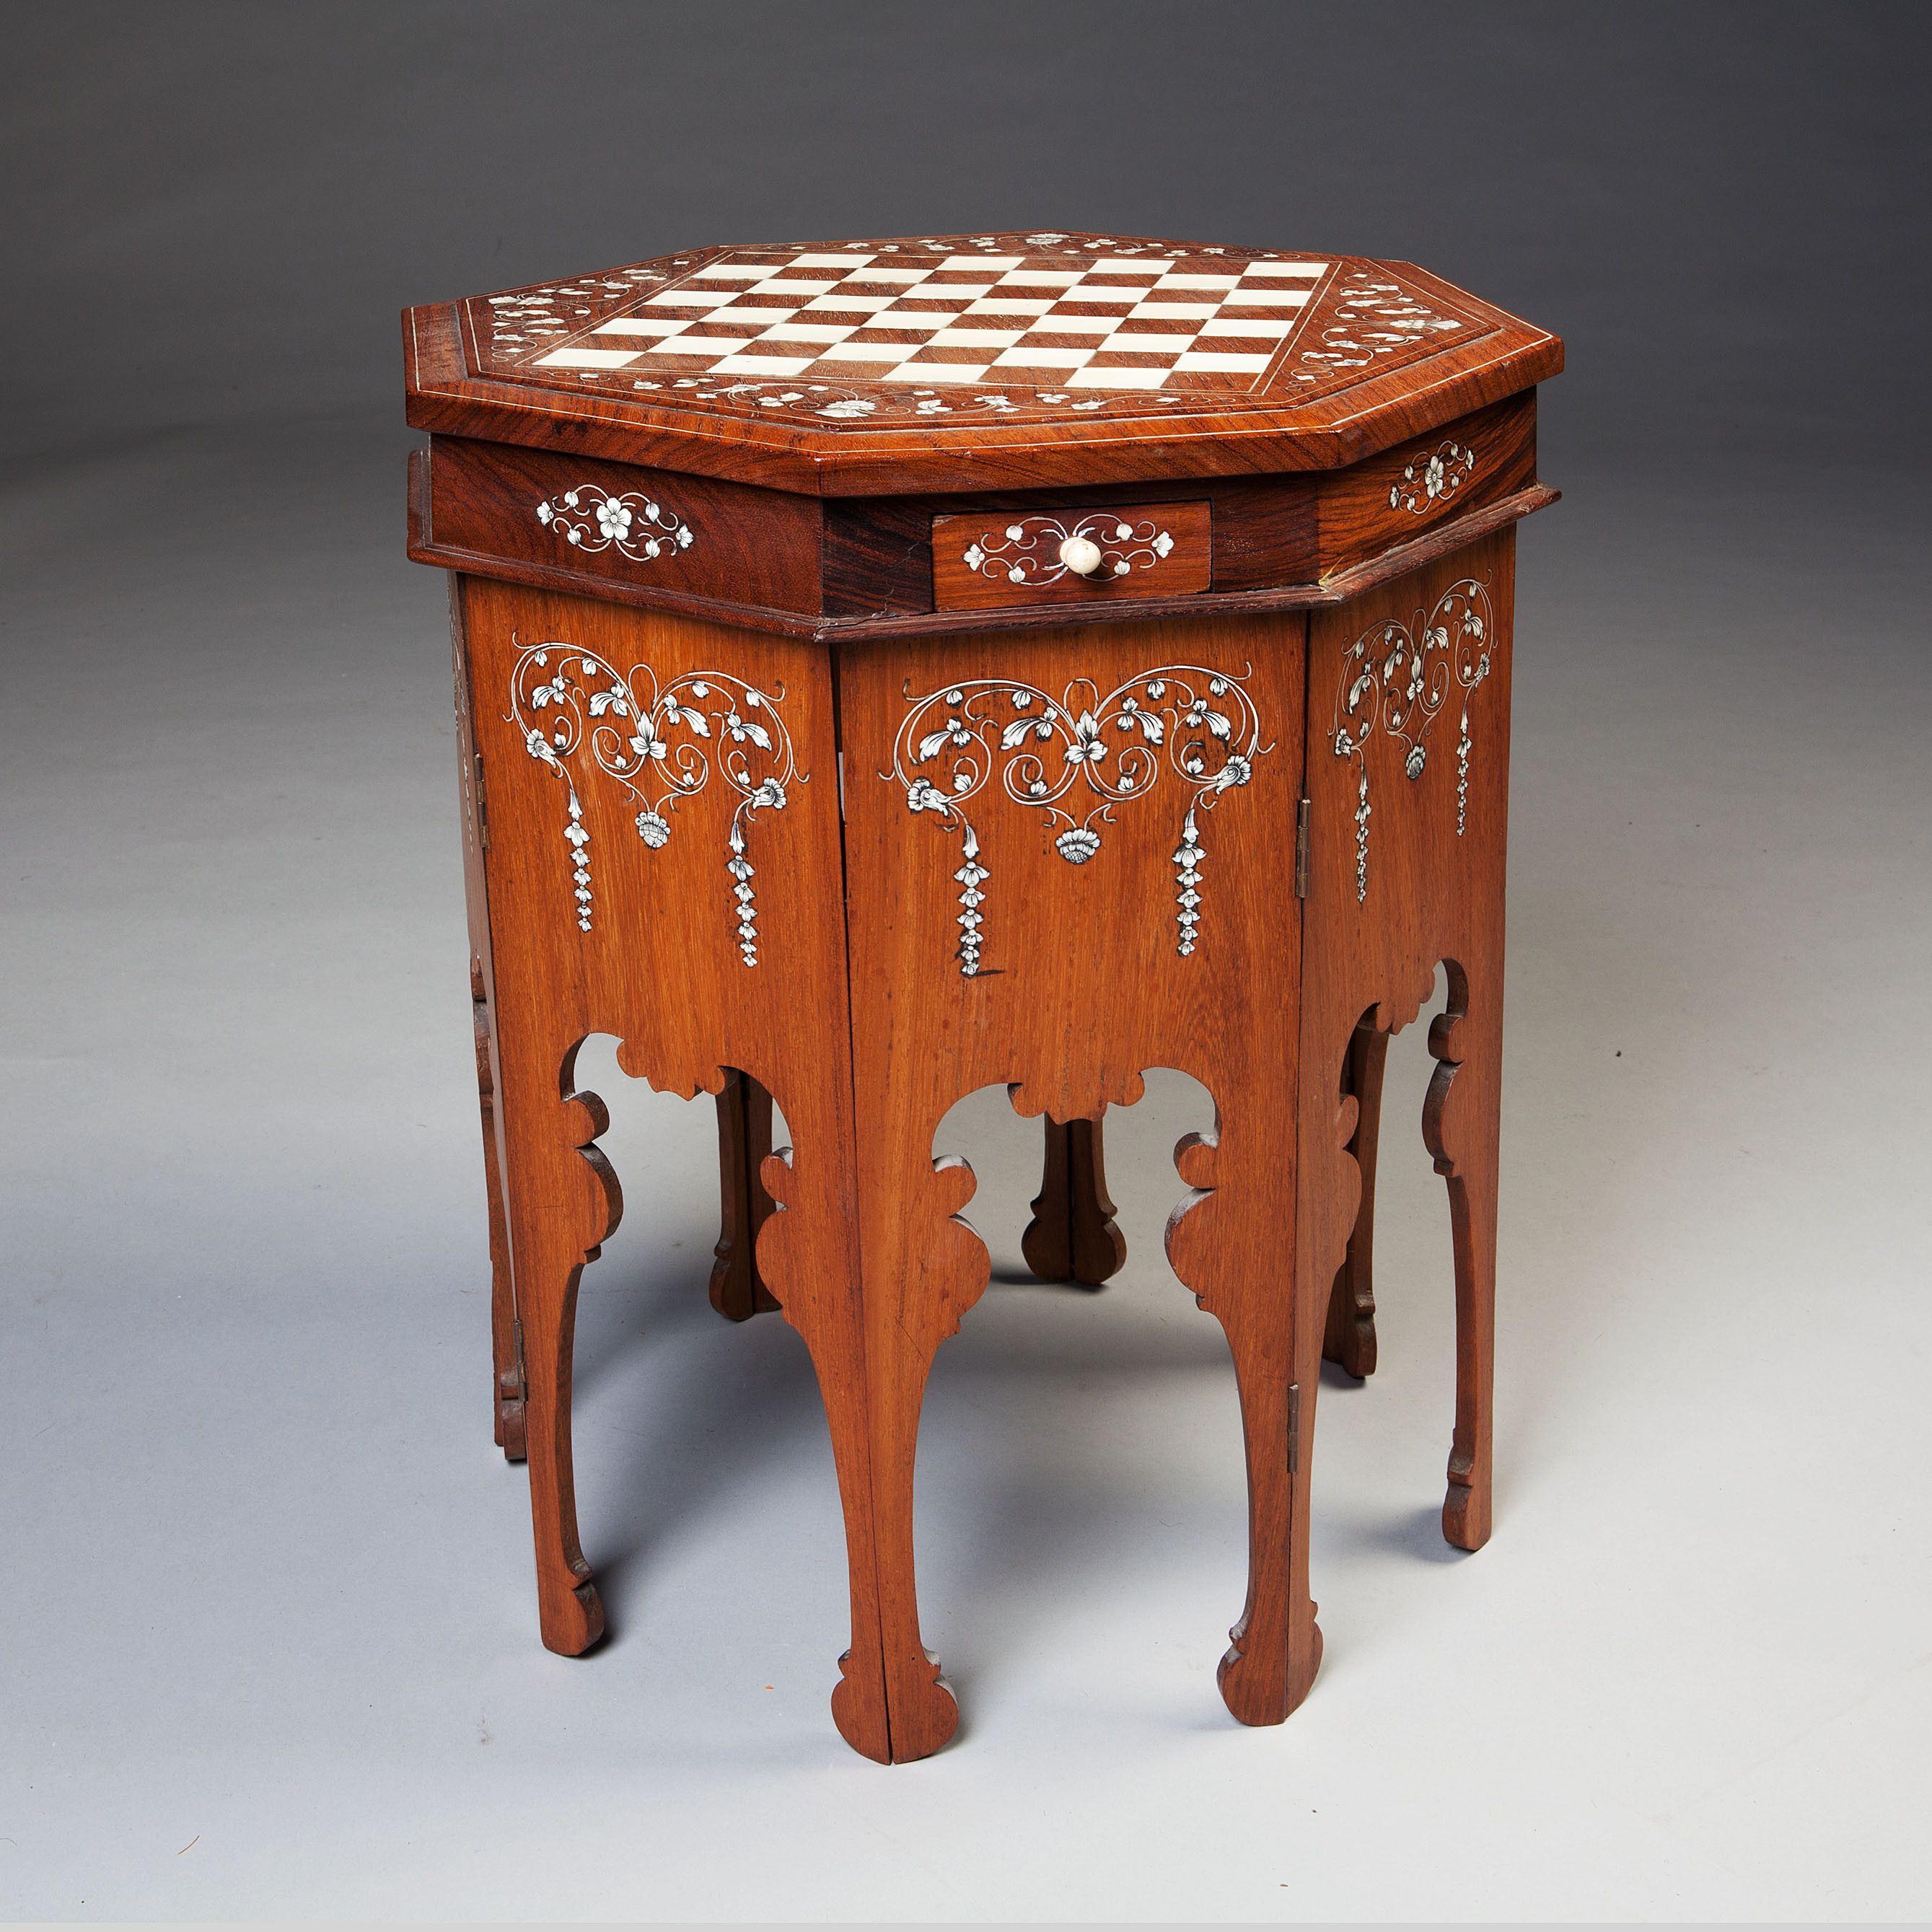 A FINE IVORY INLAID MYSORE INDIAN GAME TABLE : Nicholas Wells Antiques